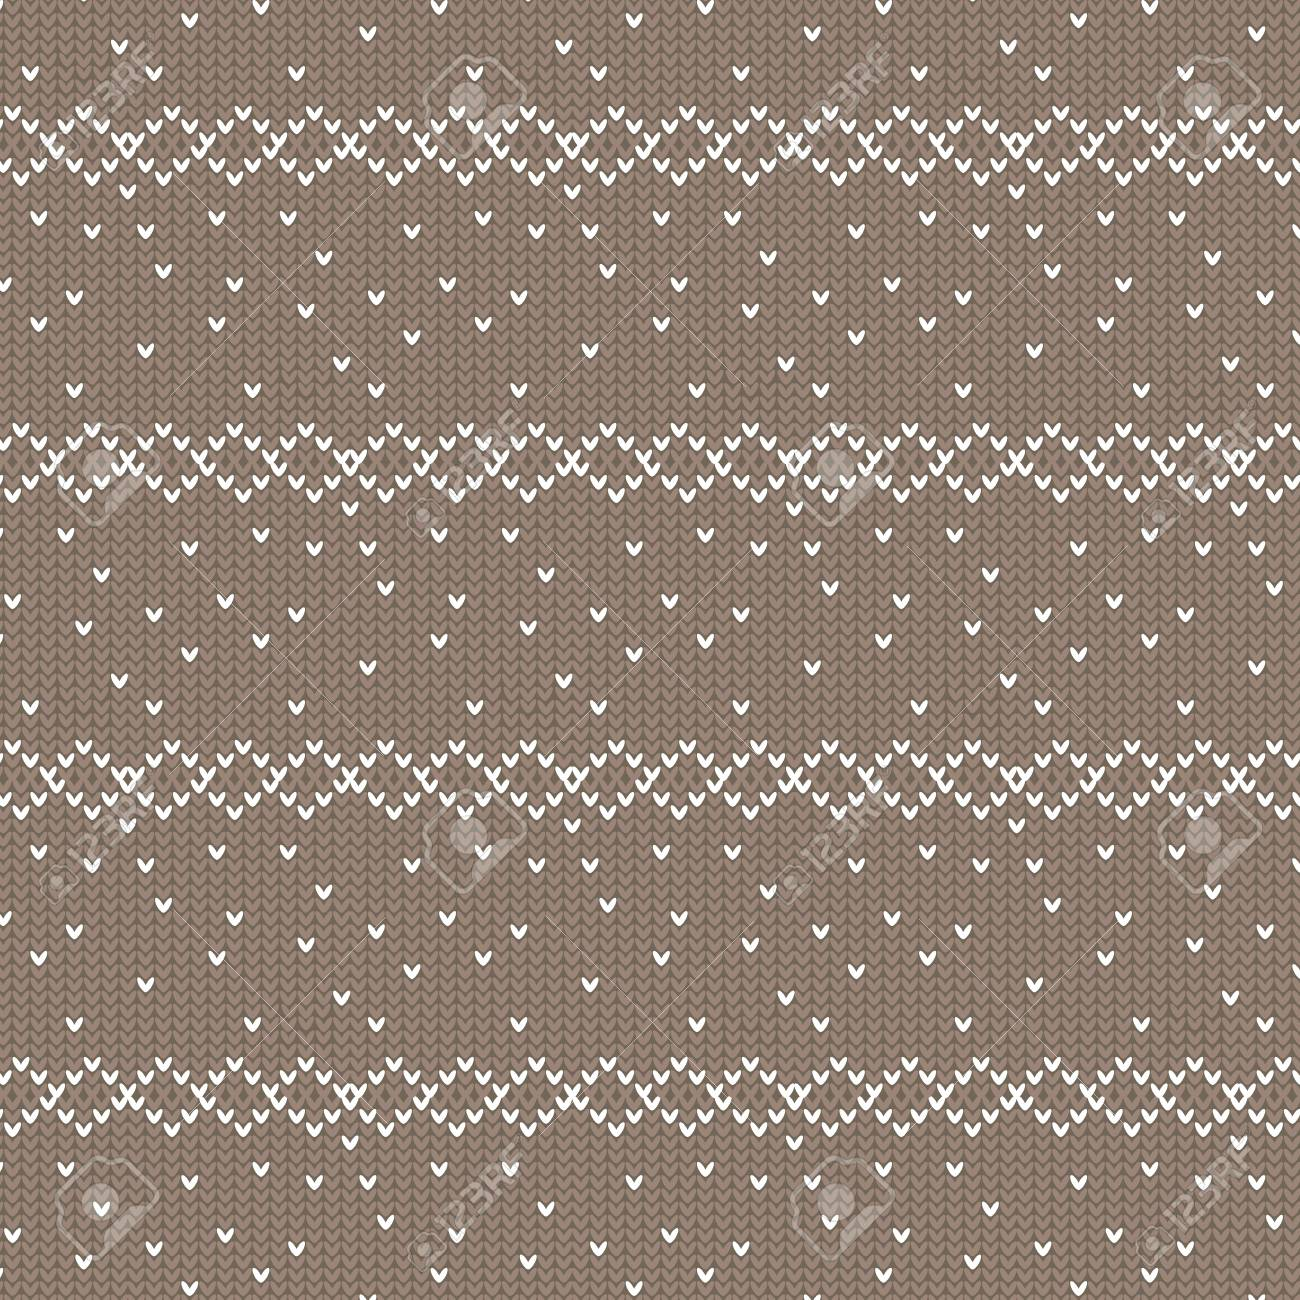 Brown And White Diamond Row With Spot Knitting Pattern Background ...